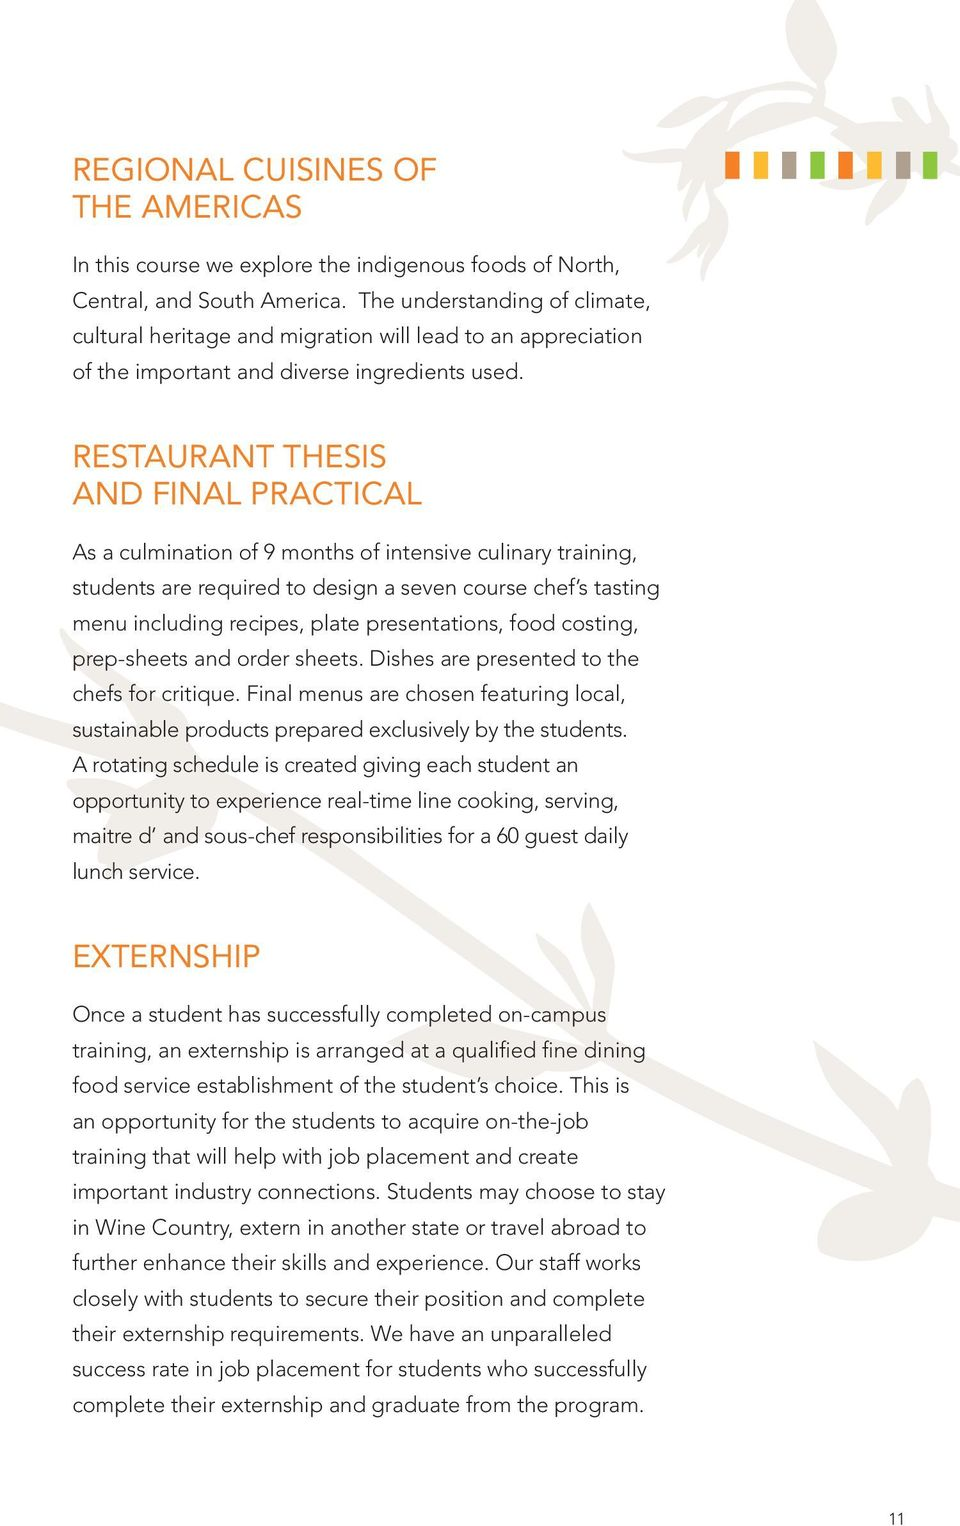 RESTAURANT THESIS AND FINAL PRACTICAL As a culmination of 9 months of intensive culinary training, students are required to design a seven course chef s tasting menu including recipes, plate